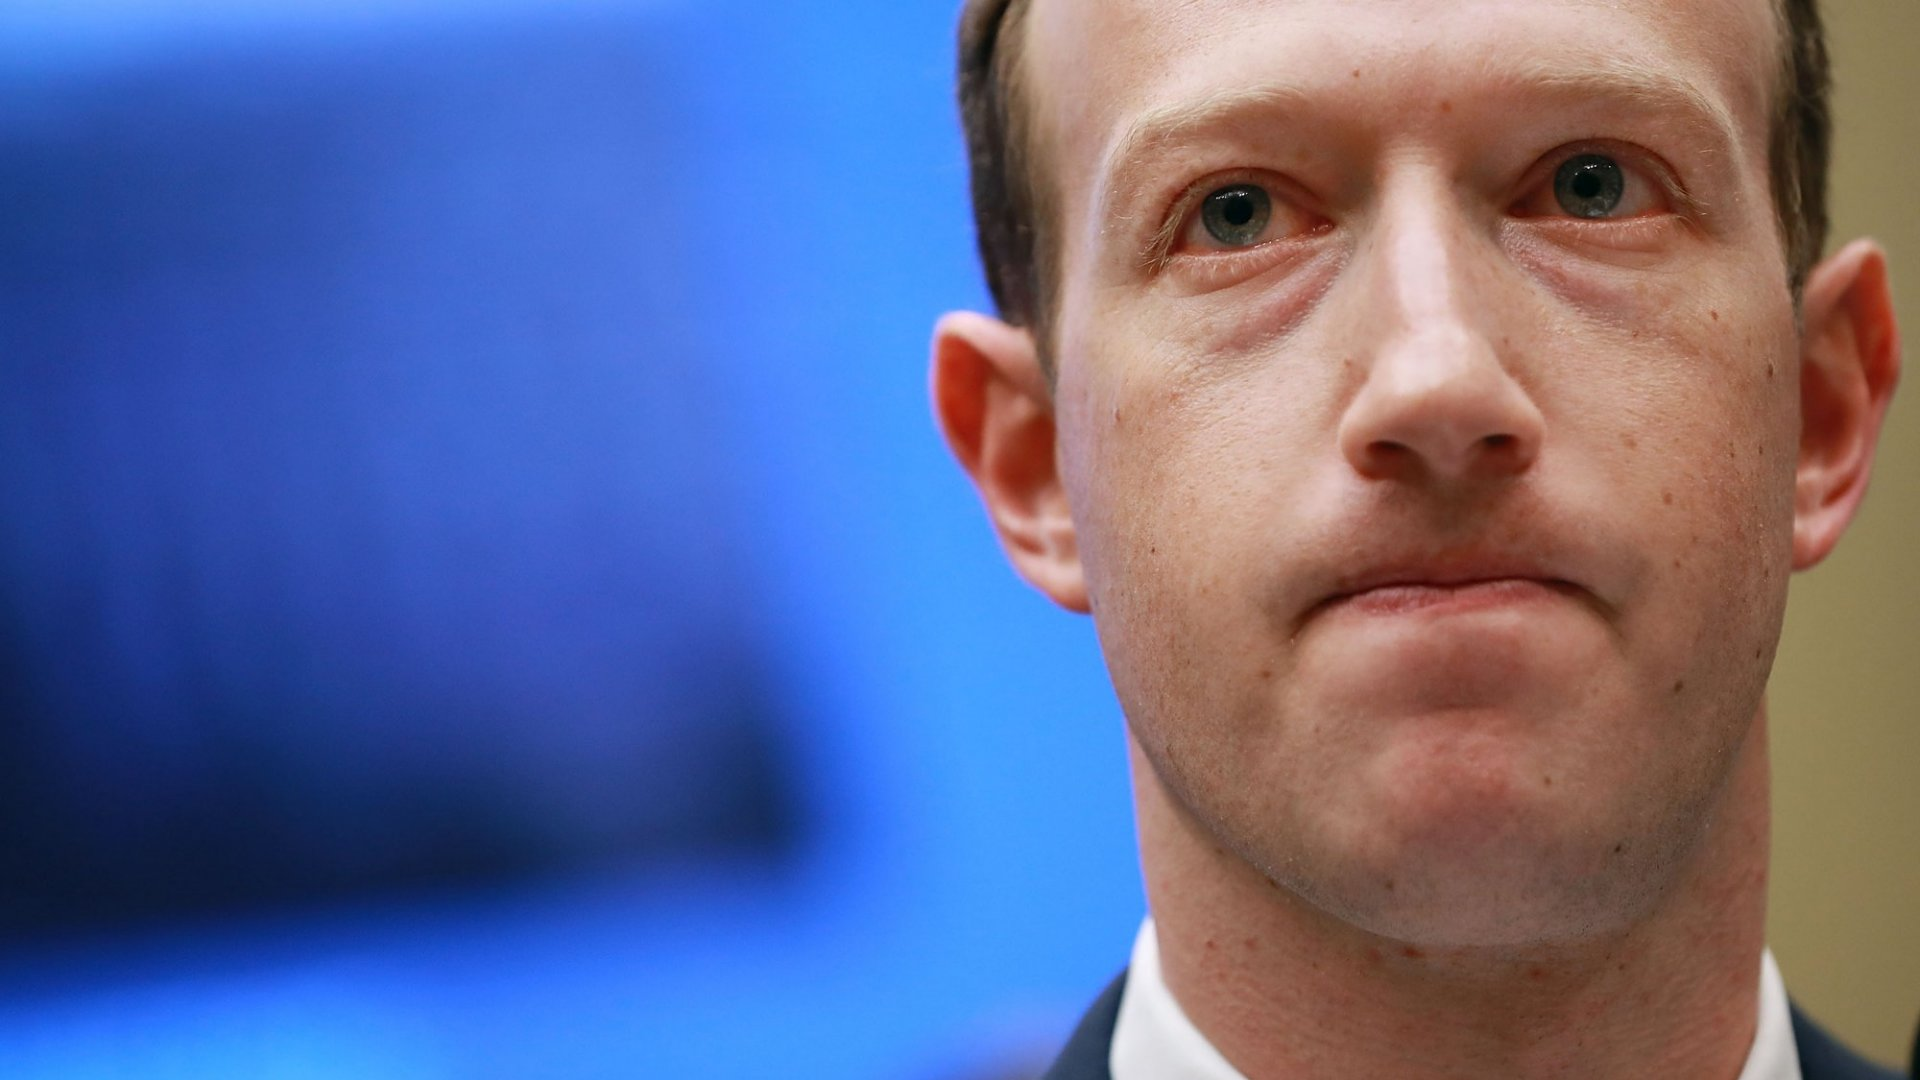 Facebook's Quarterly Earnings Report Has Unveiled a Possible $5 Billion FTC Fine for Privacy Violations